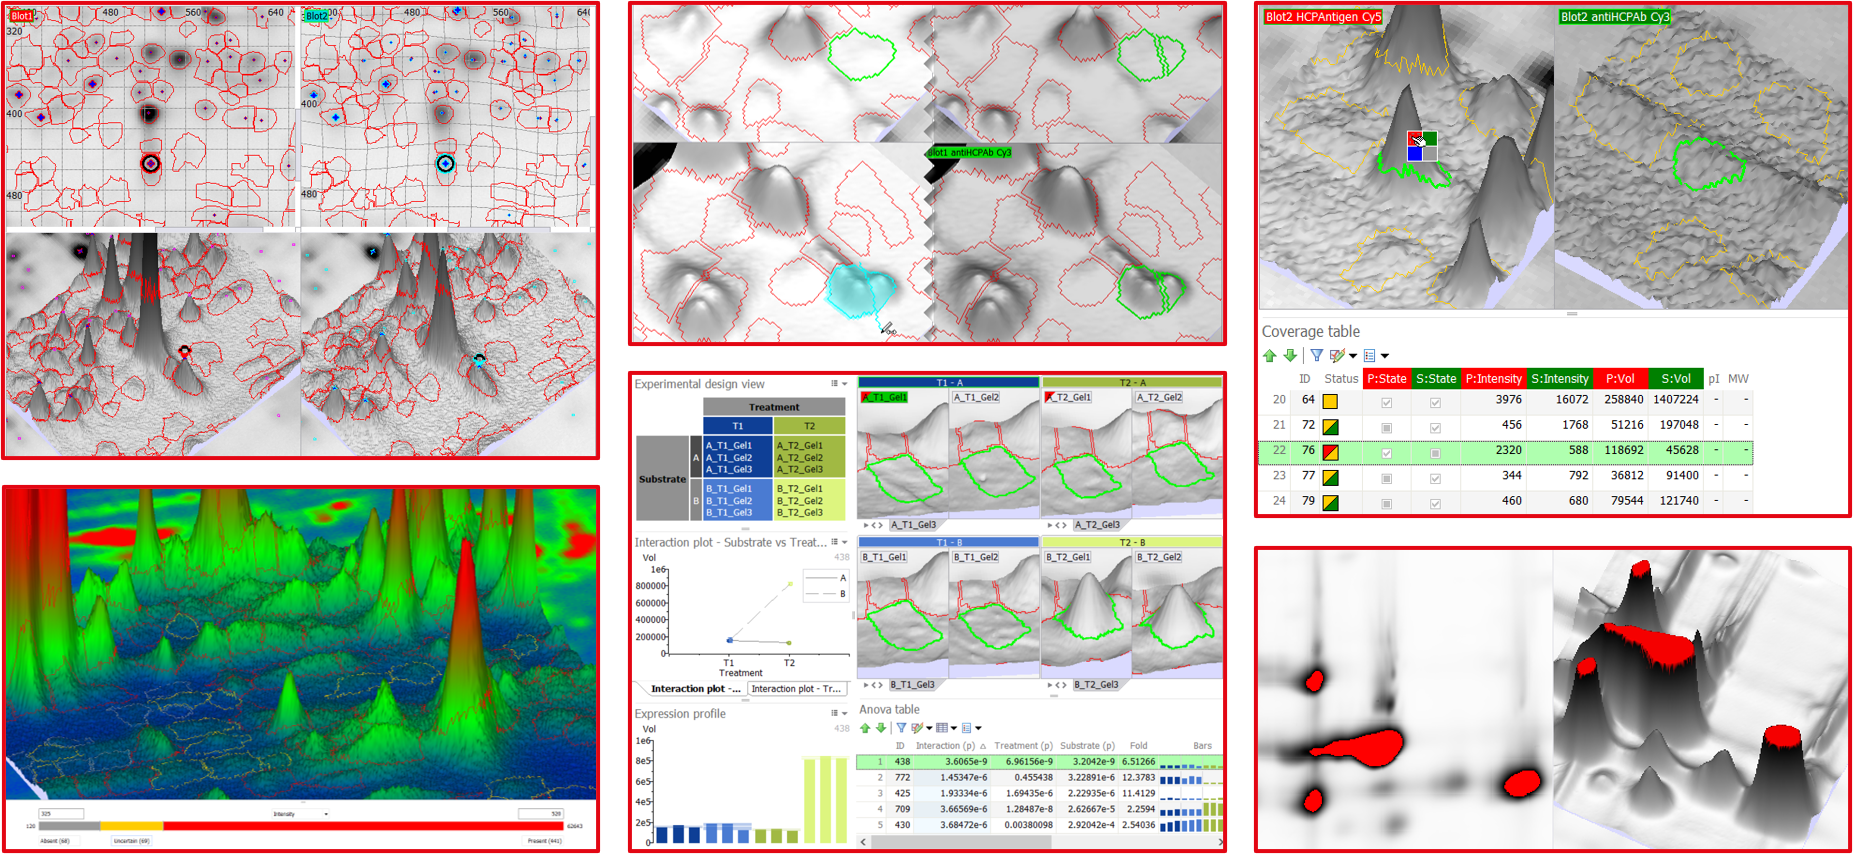 3D view in Melanie 2D gel and blot image analysis software